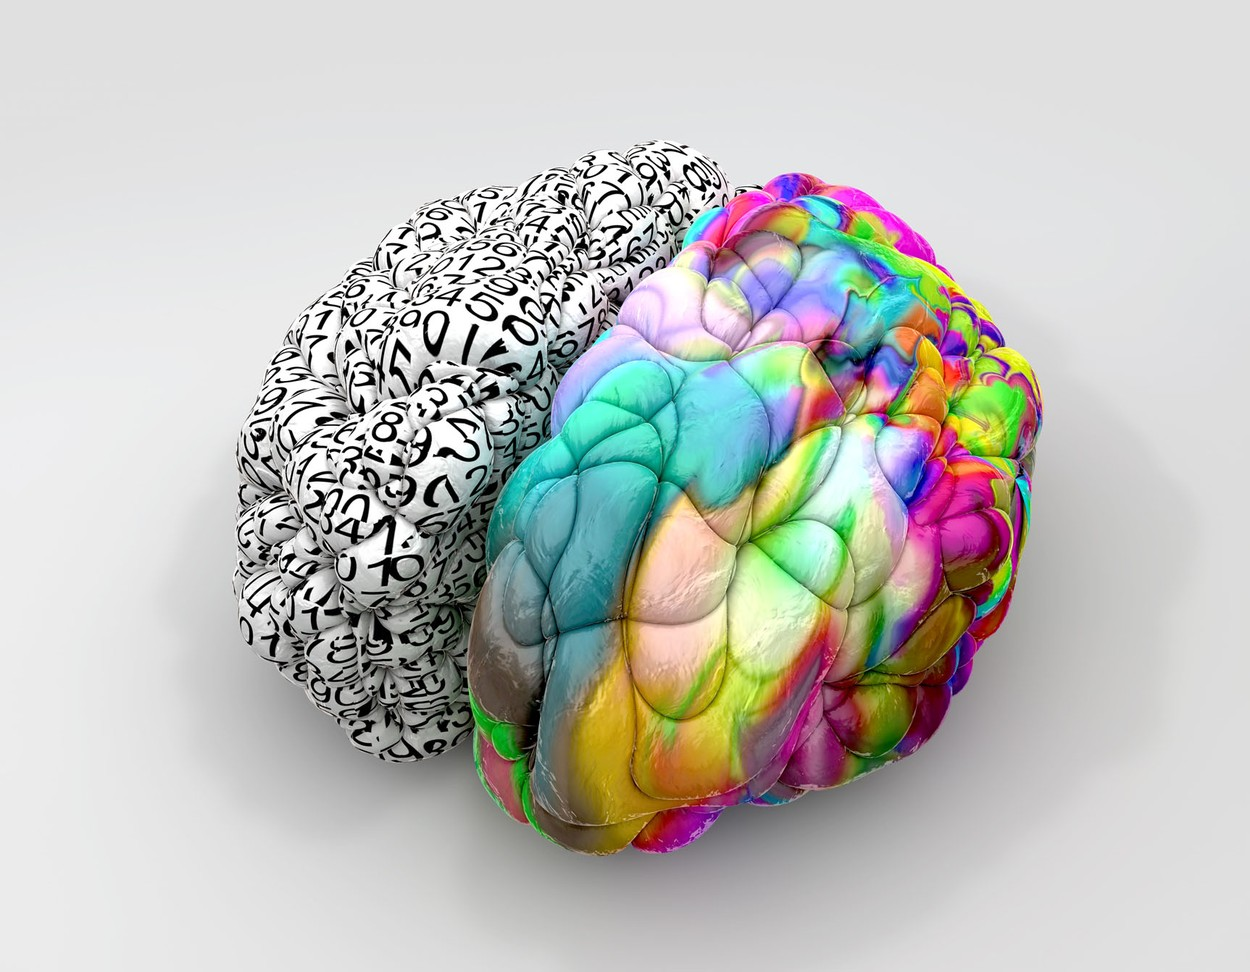 A typical brain with the left side depicting an analytical, structured and logical mind, and the right side depicting a scattered, creative and colorful side on an isolated background, Image: 160089064, License: Royalty-free, Restrictions: , Model Release: no, Credit line: Profimedia, Alamy